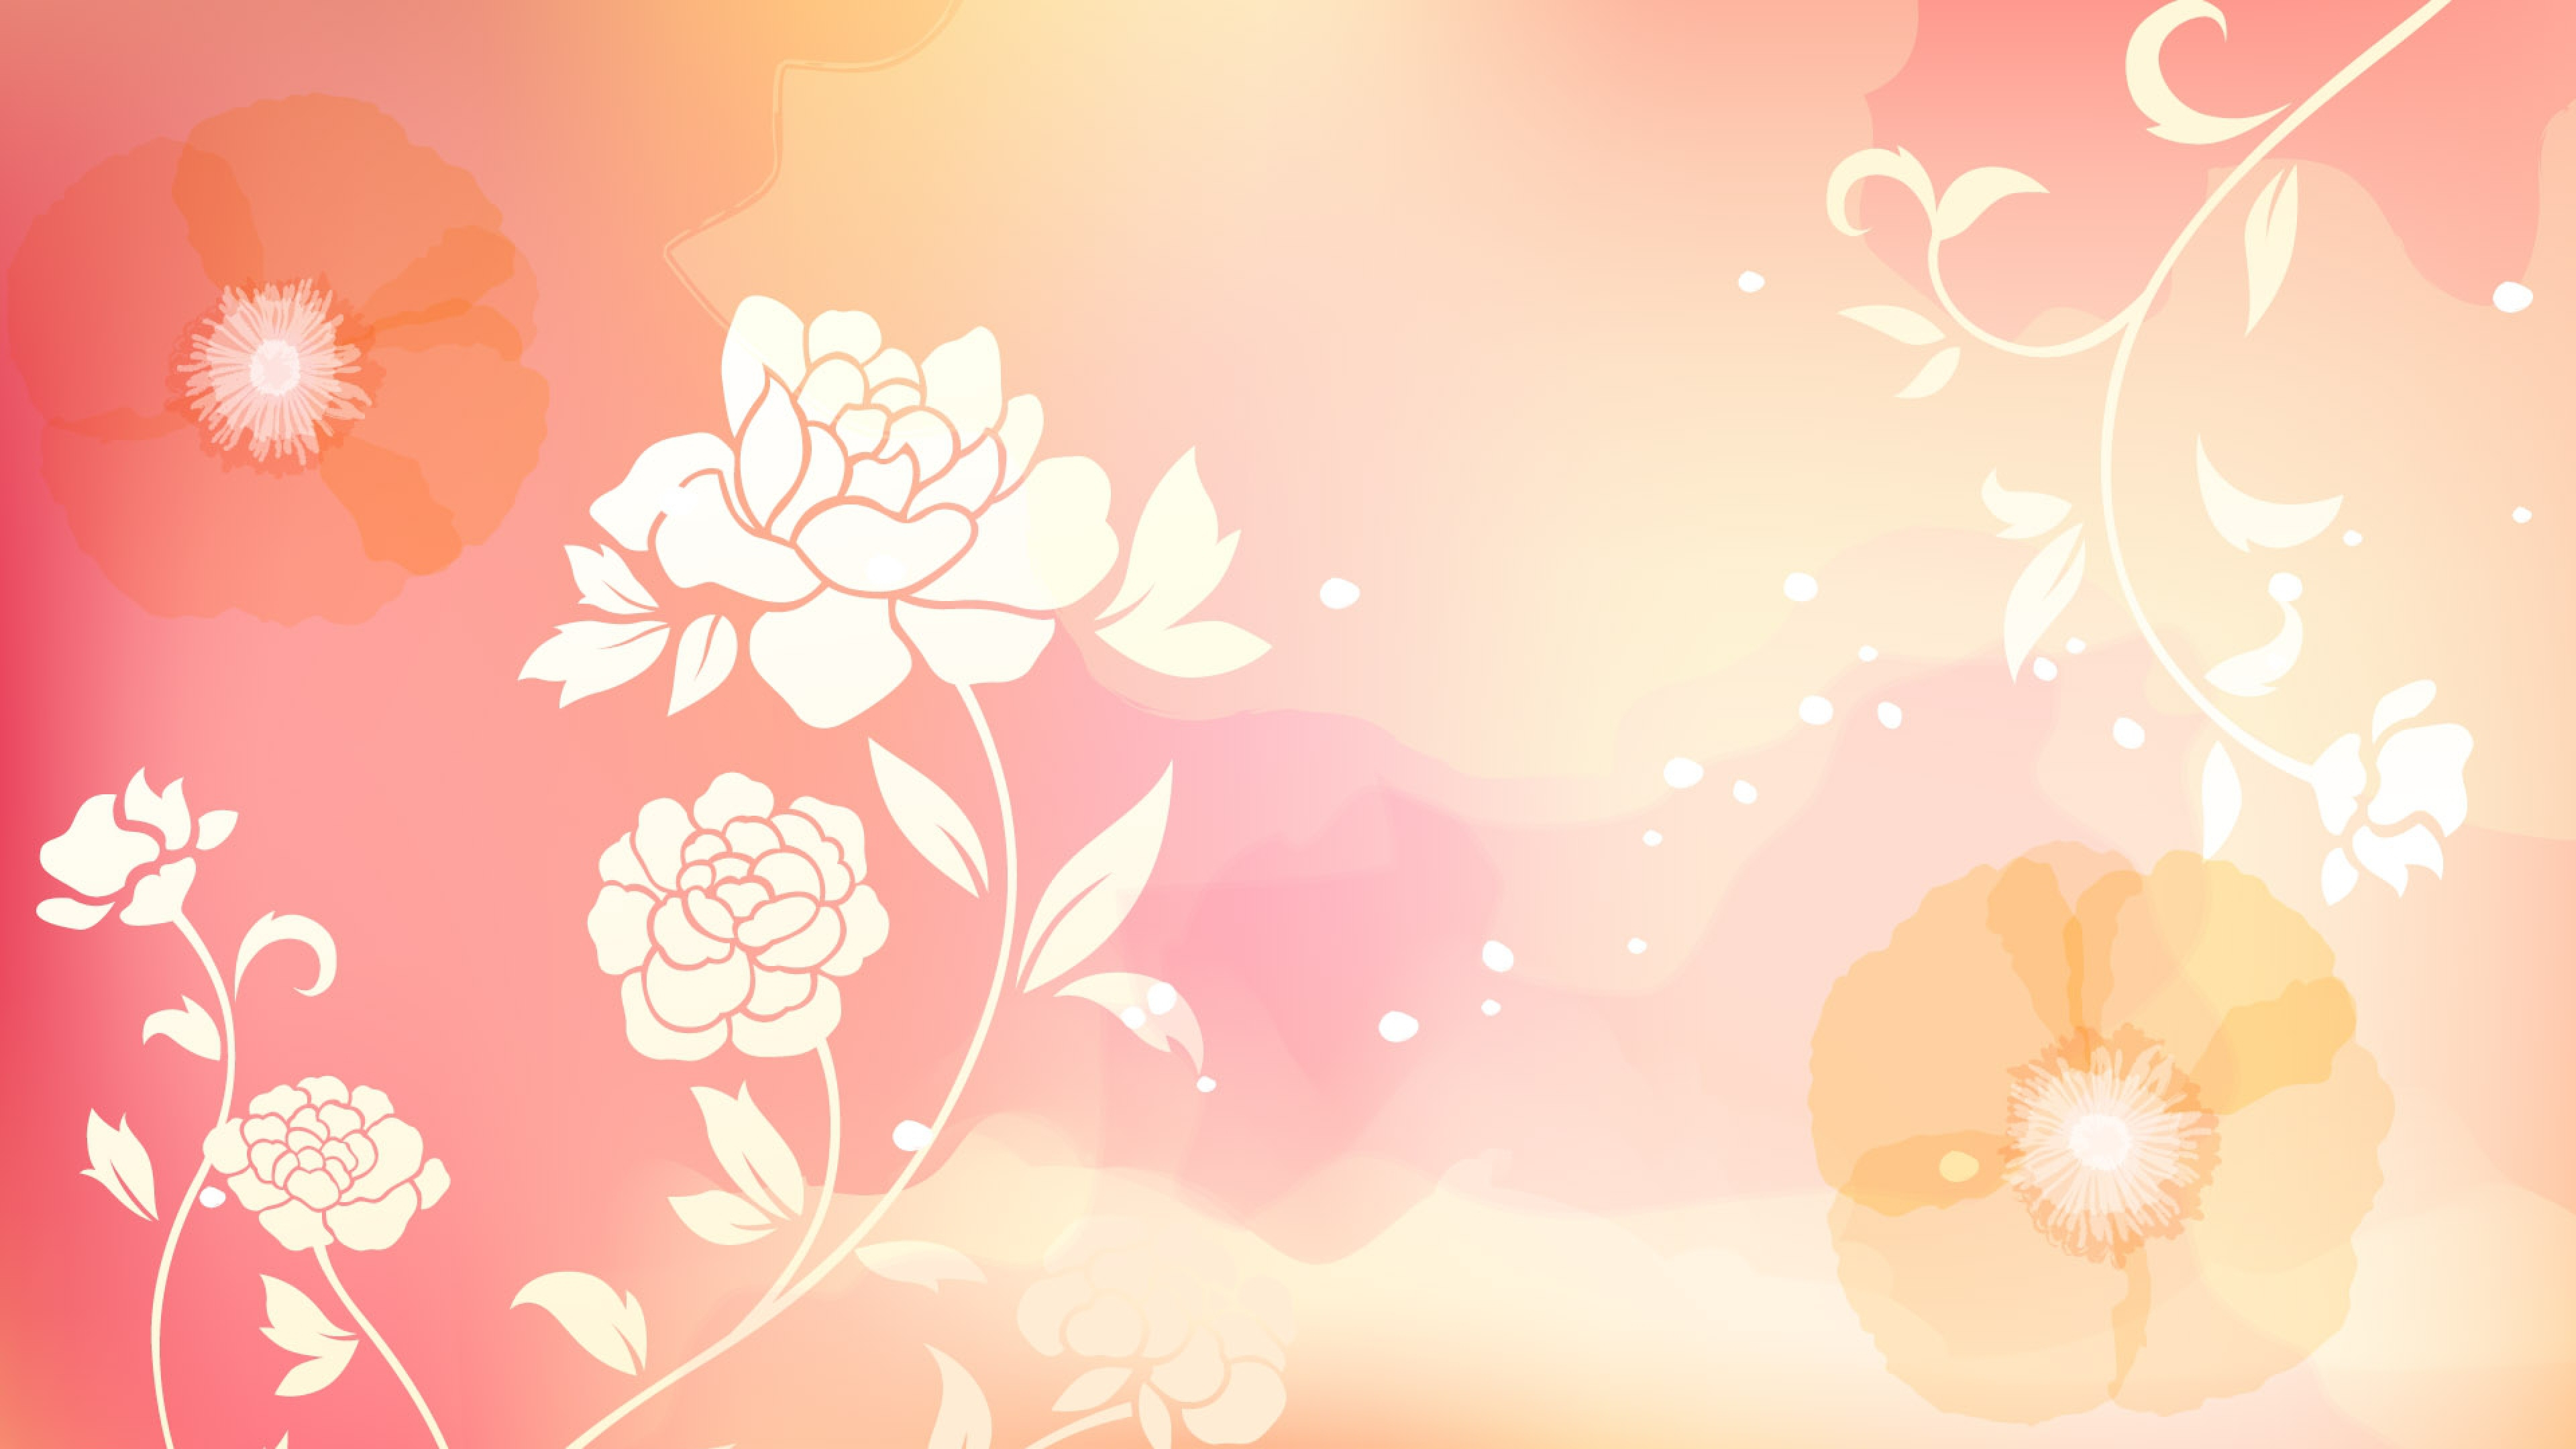 Free Download 38402152160 Flowers Background Photos 3840x2160